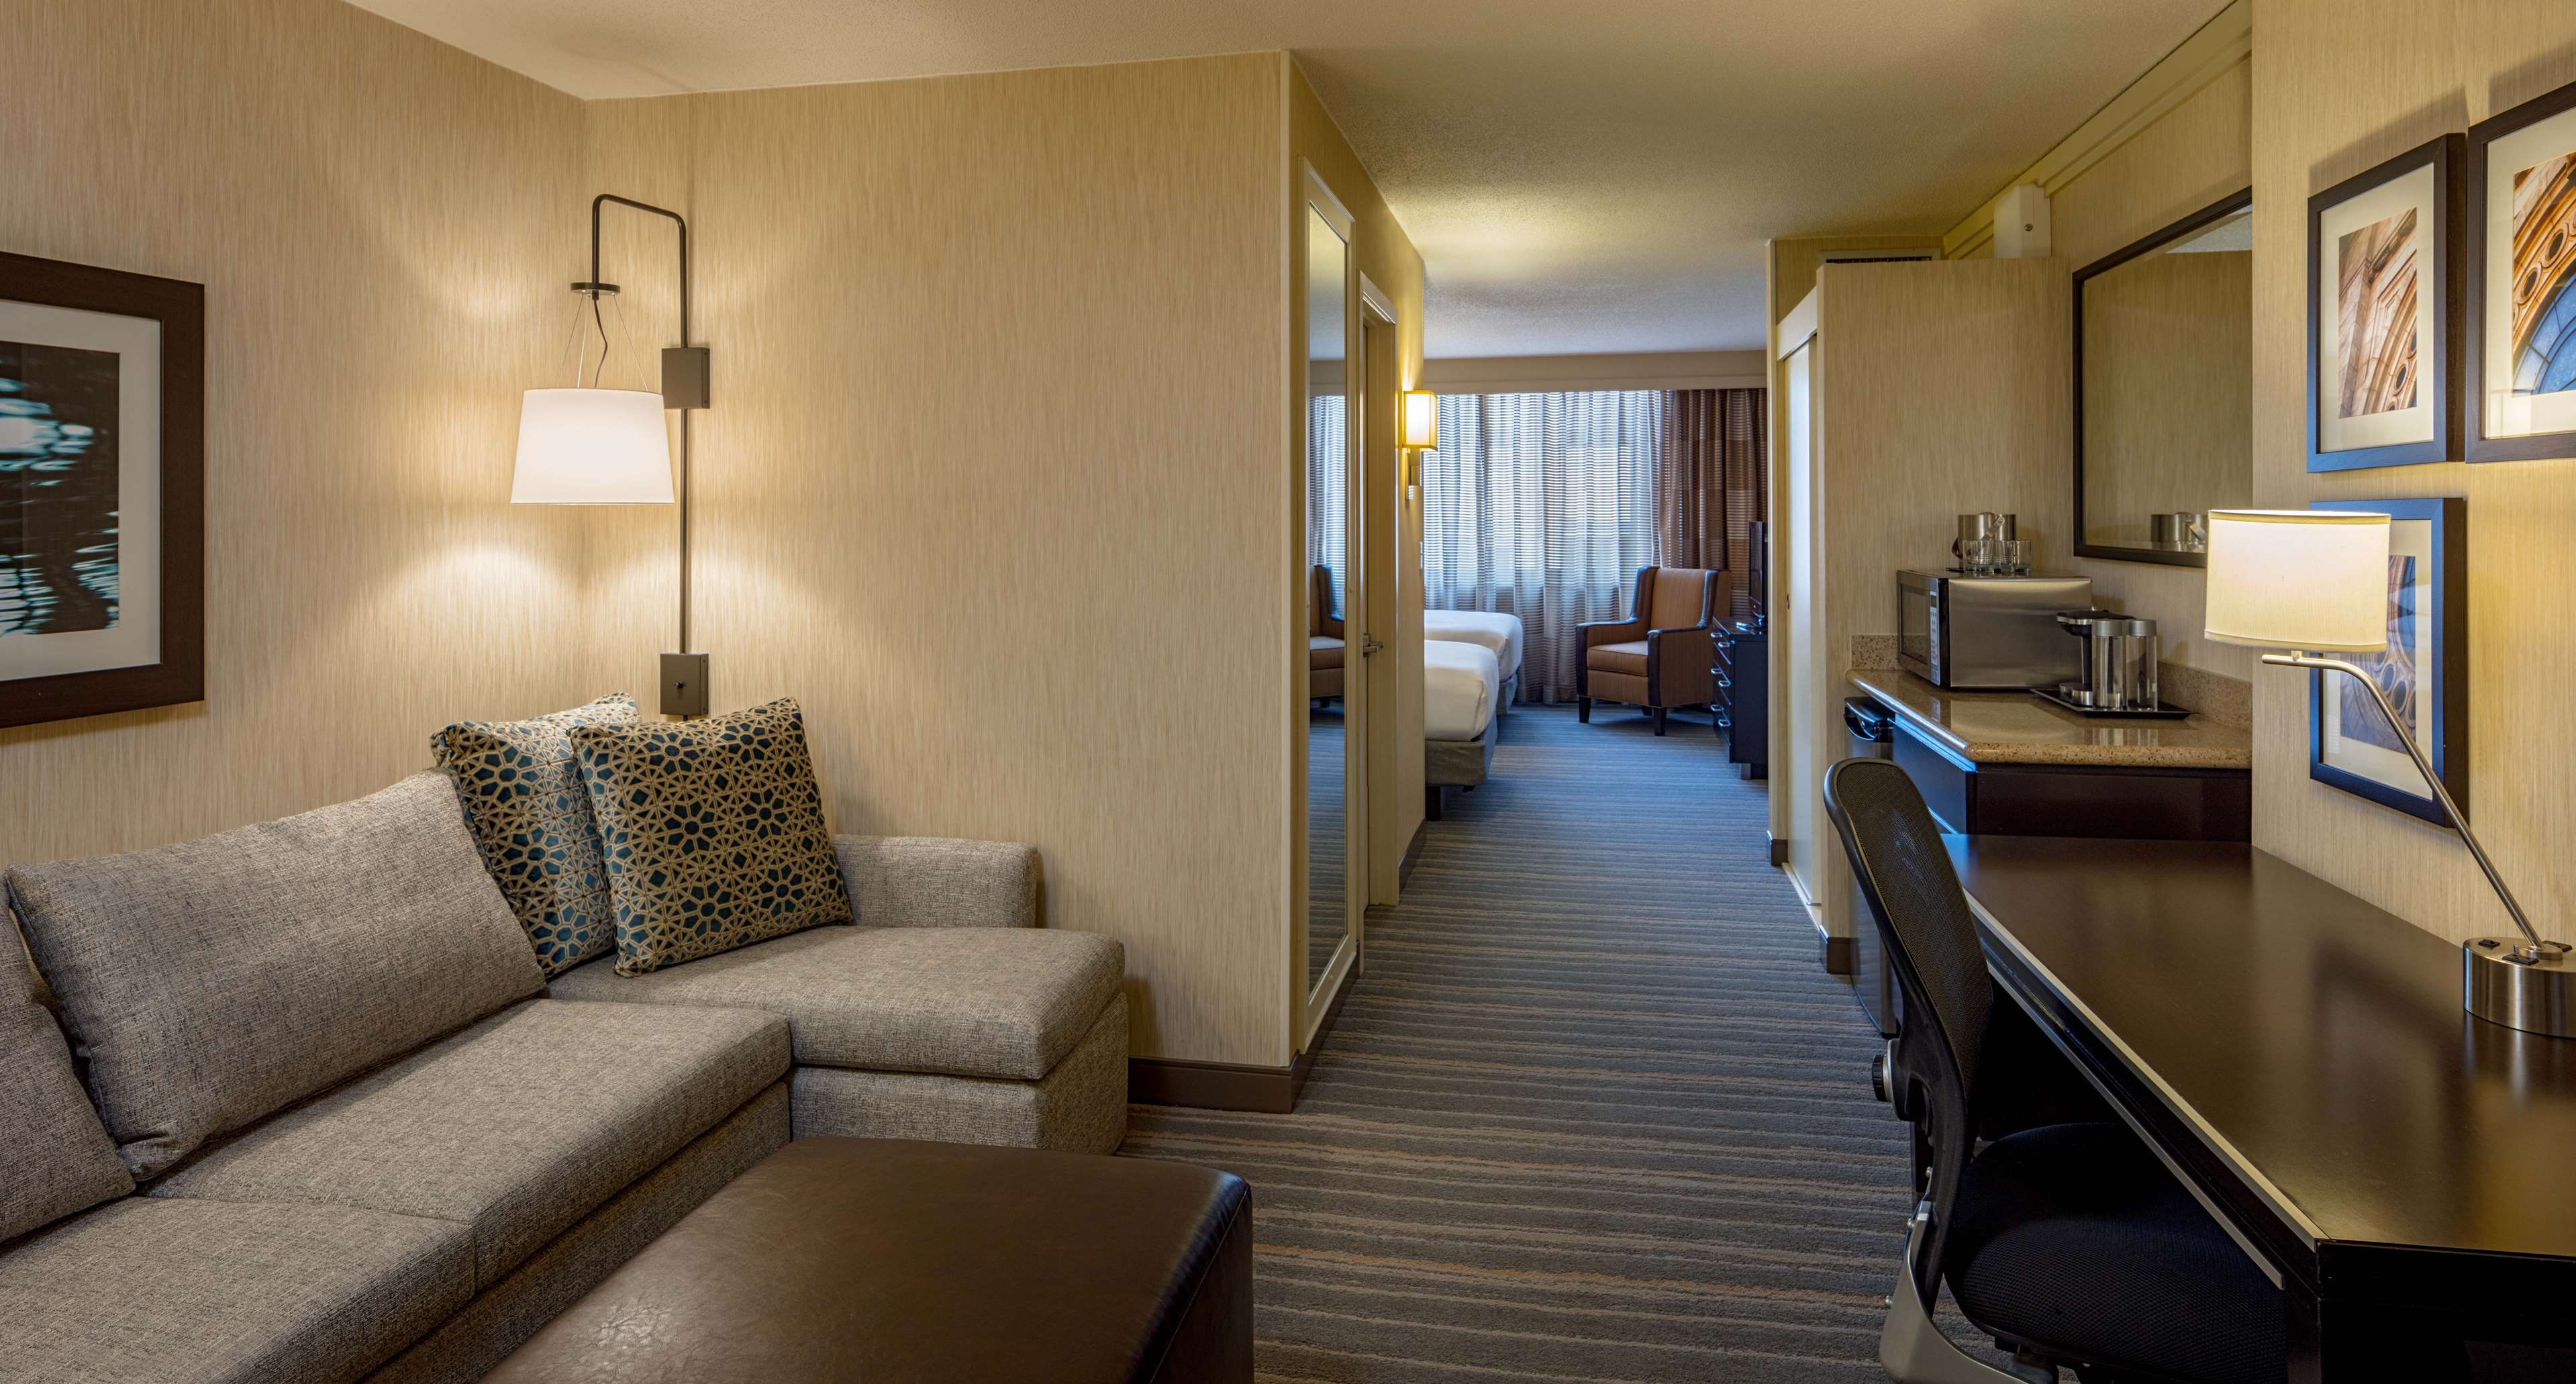 DoubleTree Suites by Hilton Hotel Minneapolis image 17